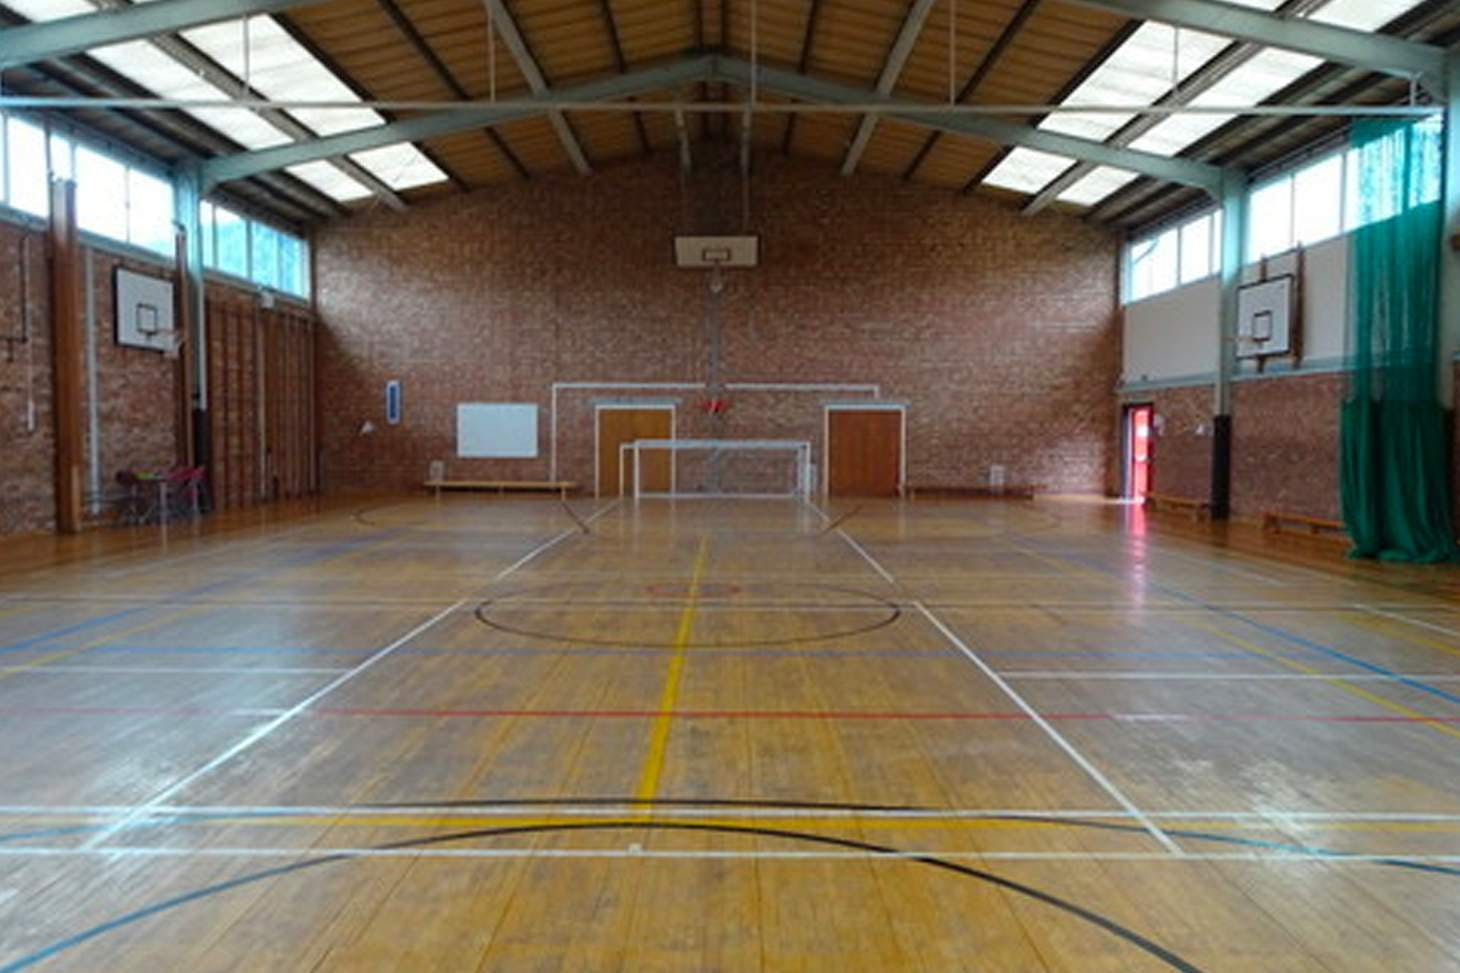 Trevelyan Middle School Sports hall space hire